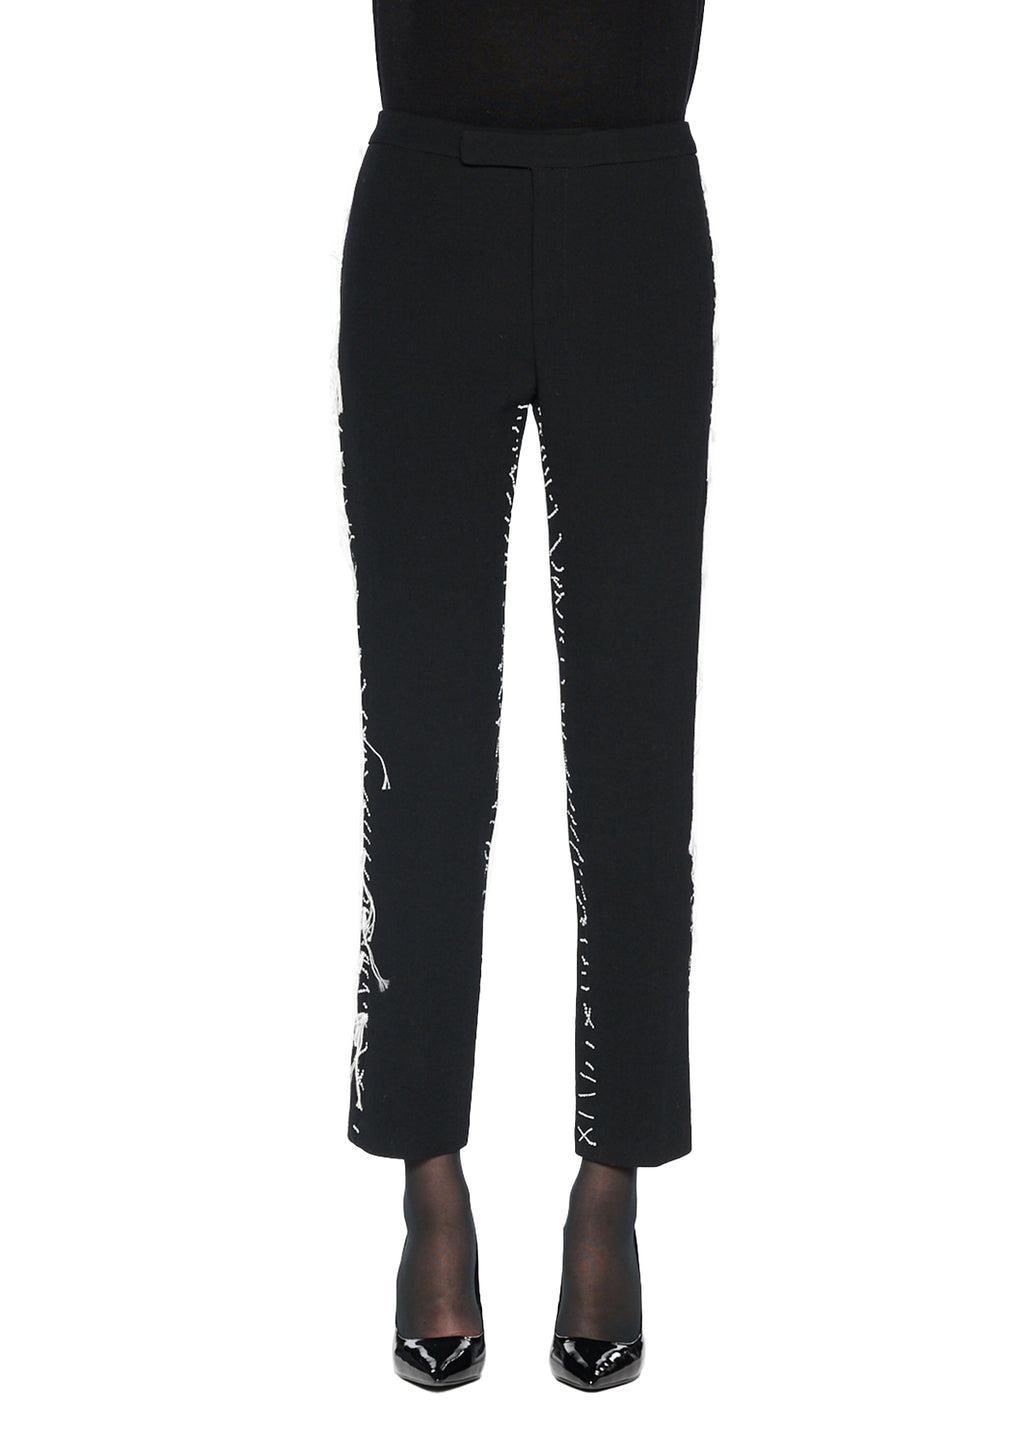 NARROW PANTS WITH 'TROMPE L'OEIL' STITCHES - Women's Bottoms - Libertine